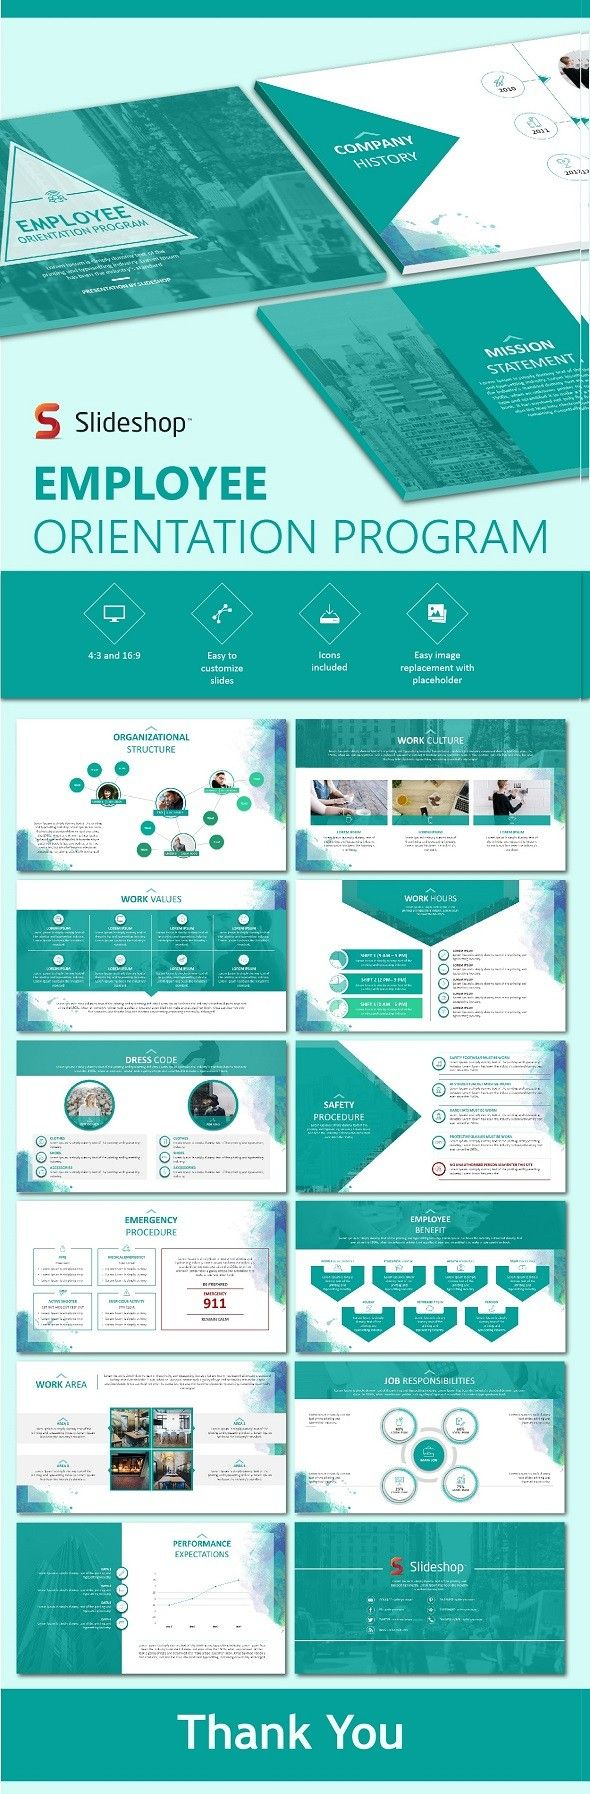 Enterprise Company New Employee Induction Training Business Ppt Template Powerpoint Pptx Free Download Pikbest Business Ppt Templates Business Ppt New Employee Orientation Training